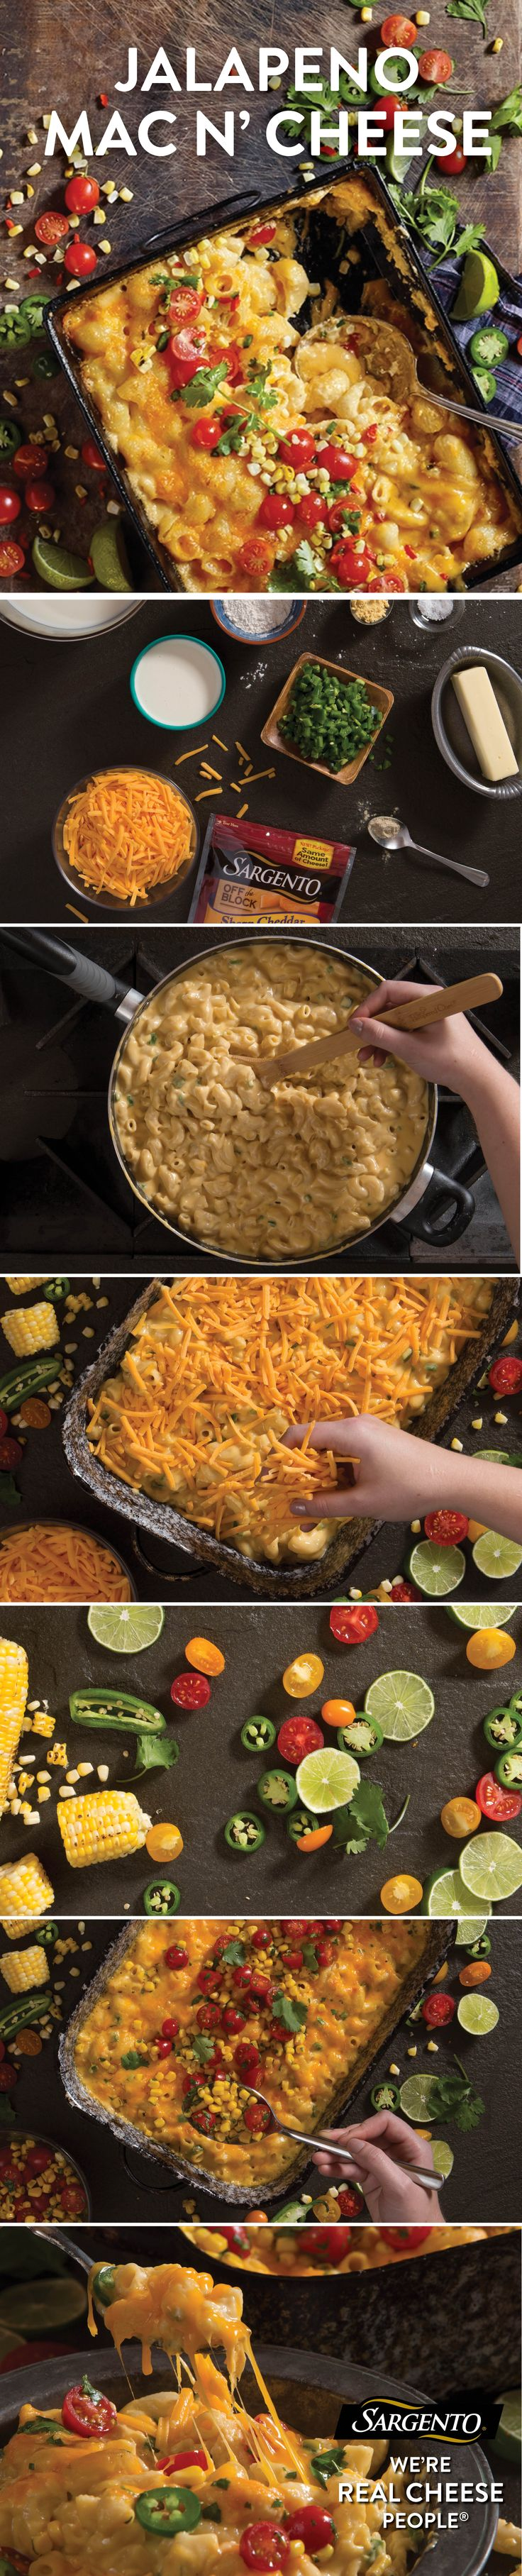 If you like classic meals with a little kick, try this recipe for jalapeño mac and cheese with corn and tomato salad. Made with fresh ingredients—like whole milk, jalapeño peppers, cherry tomatoes, grilled corn, lime juice, cilantro and with Sharp Cheddar cheese that's always shredded fresh off the block—this baked beauty will be your new best friend. Get the complete recipe at Sargento.com.